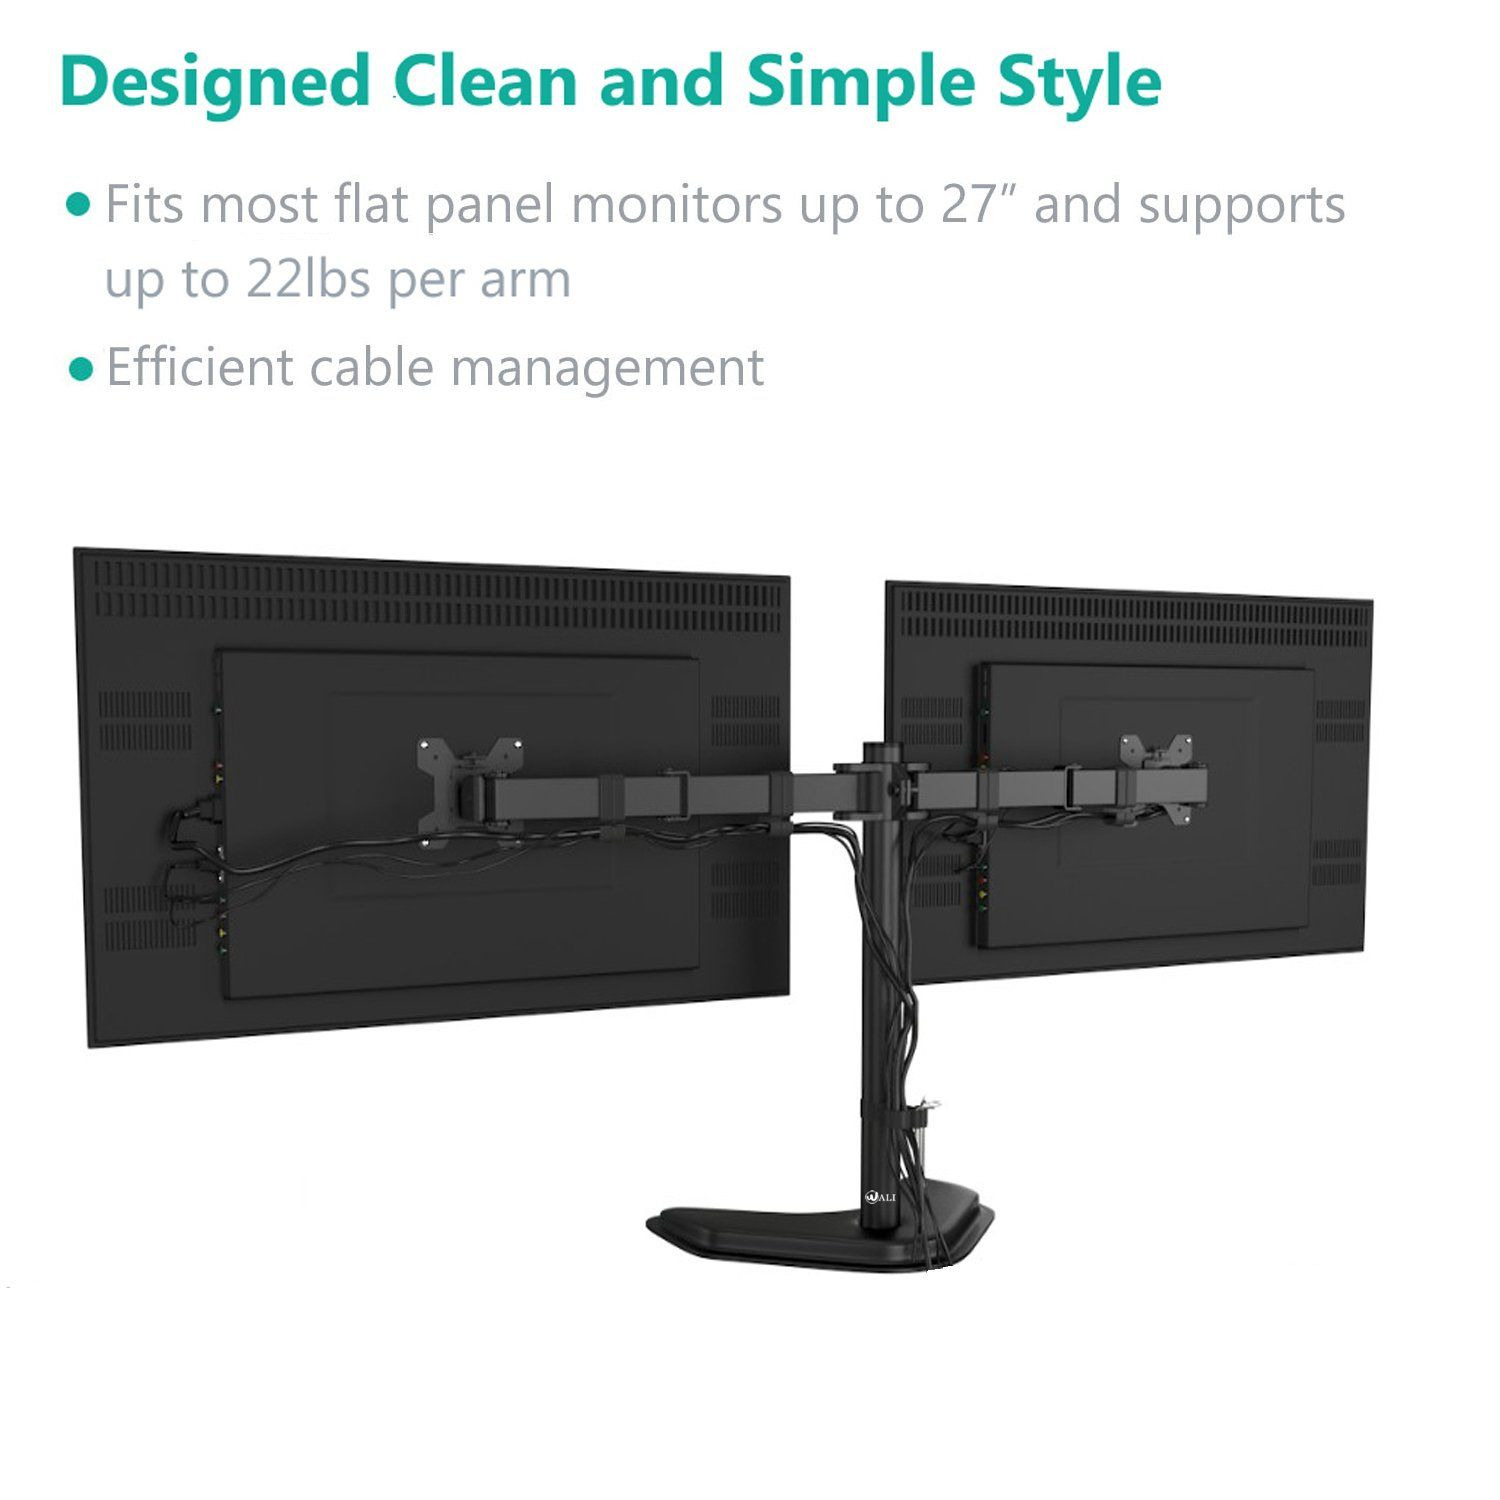 WALI Dual LCD Monitor Mount Free Standing Fully Adjustable Desk Fits Two Up To